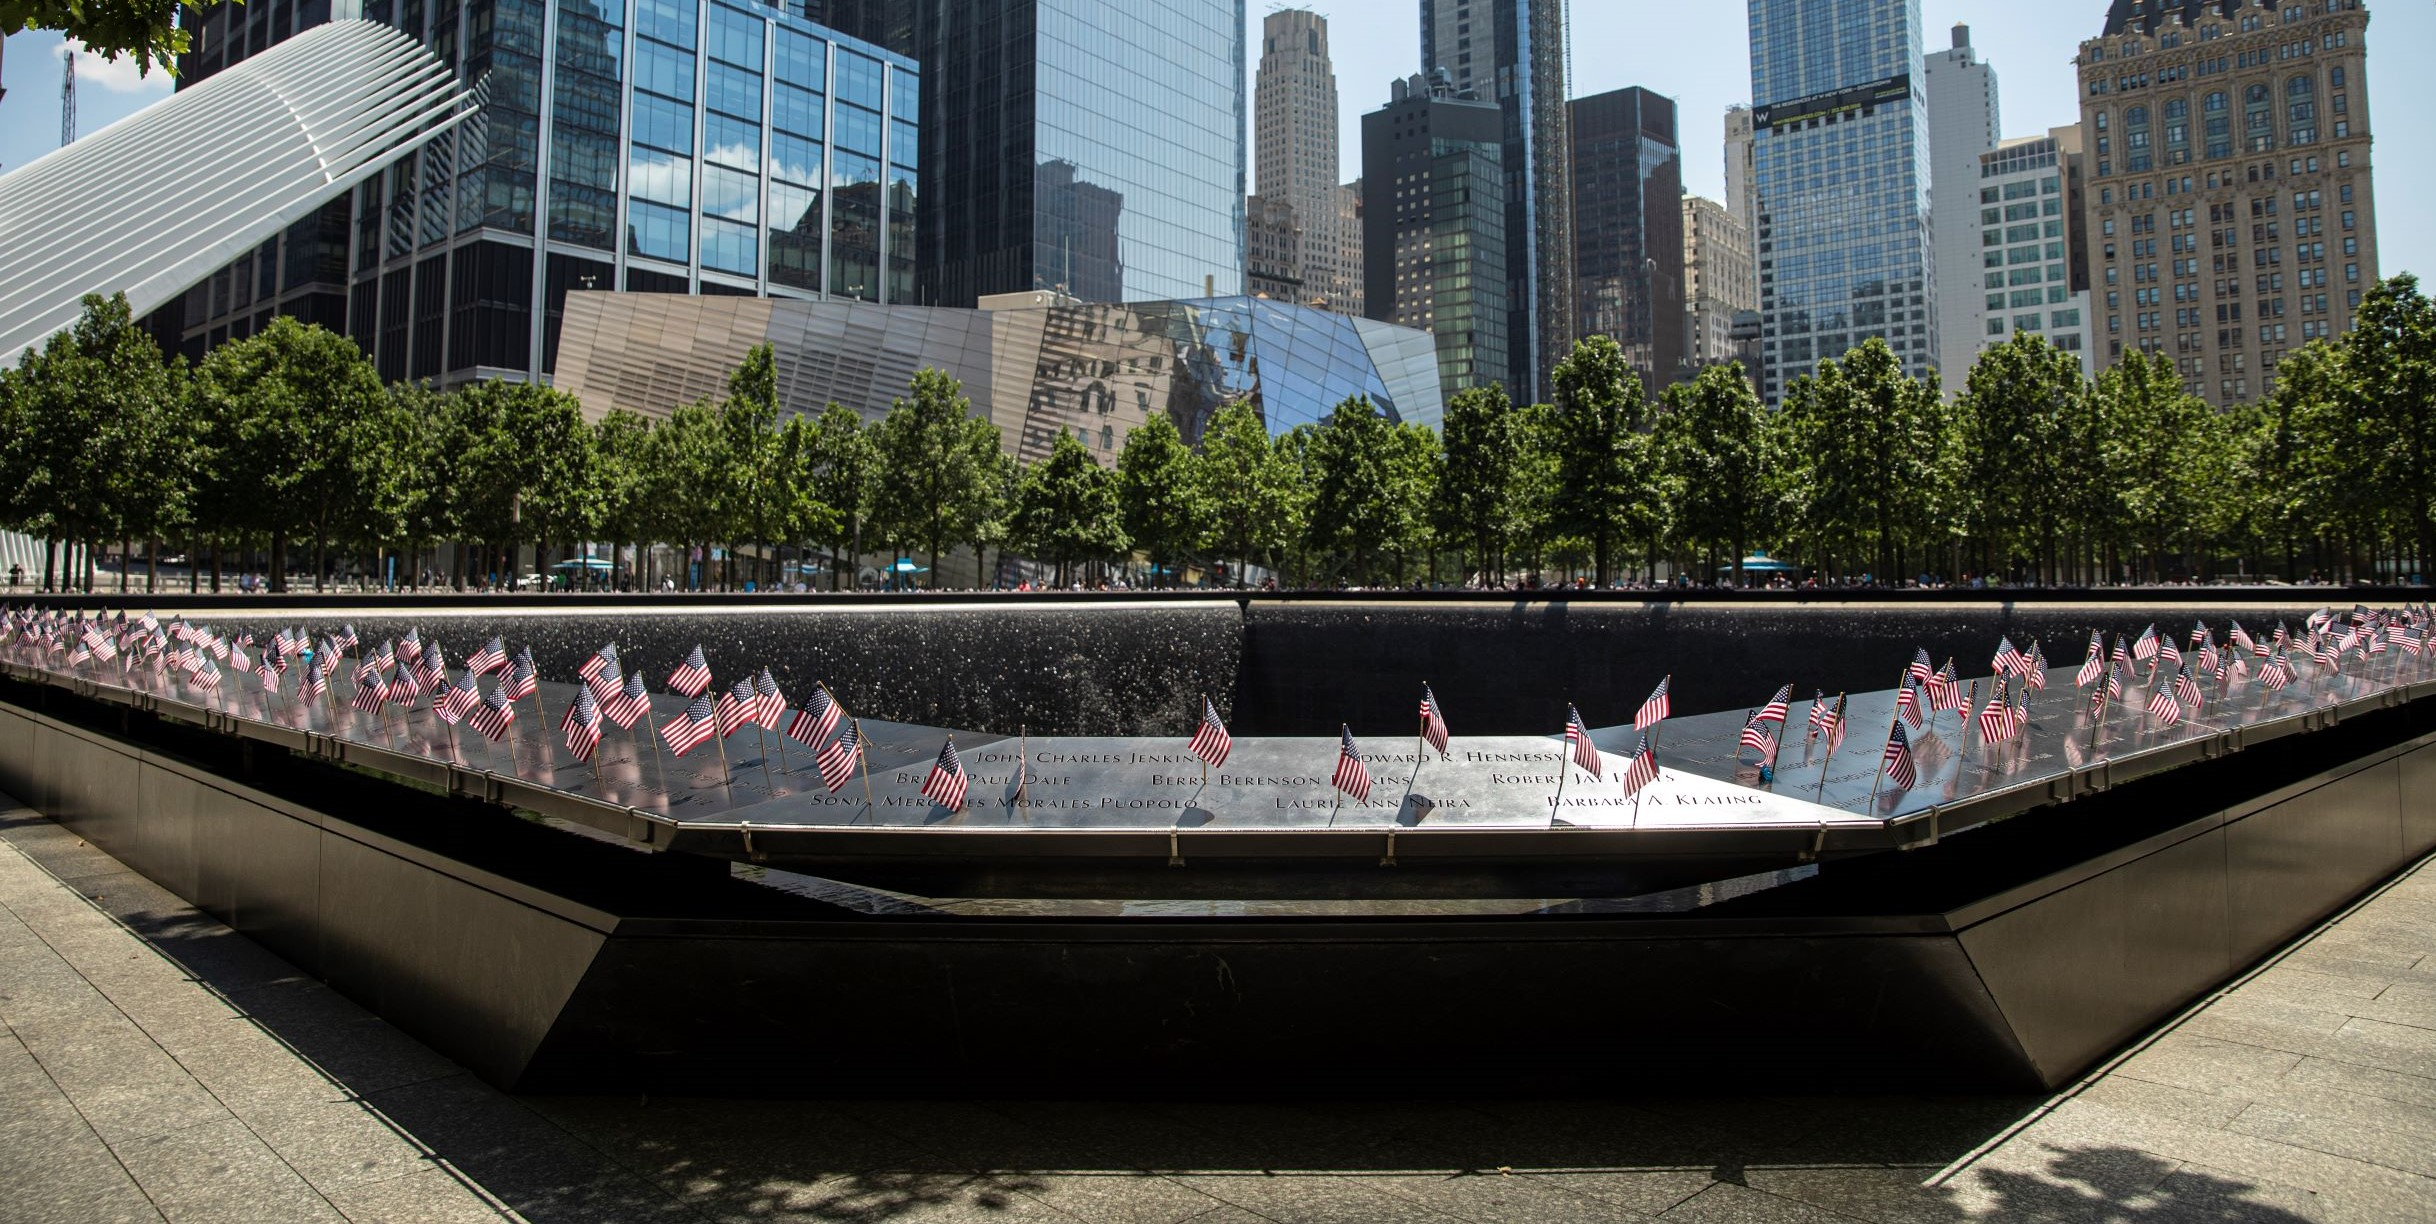 Almost 3,000 people were killed during the 9/11 terrorist attacks